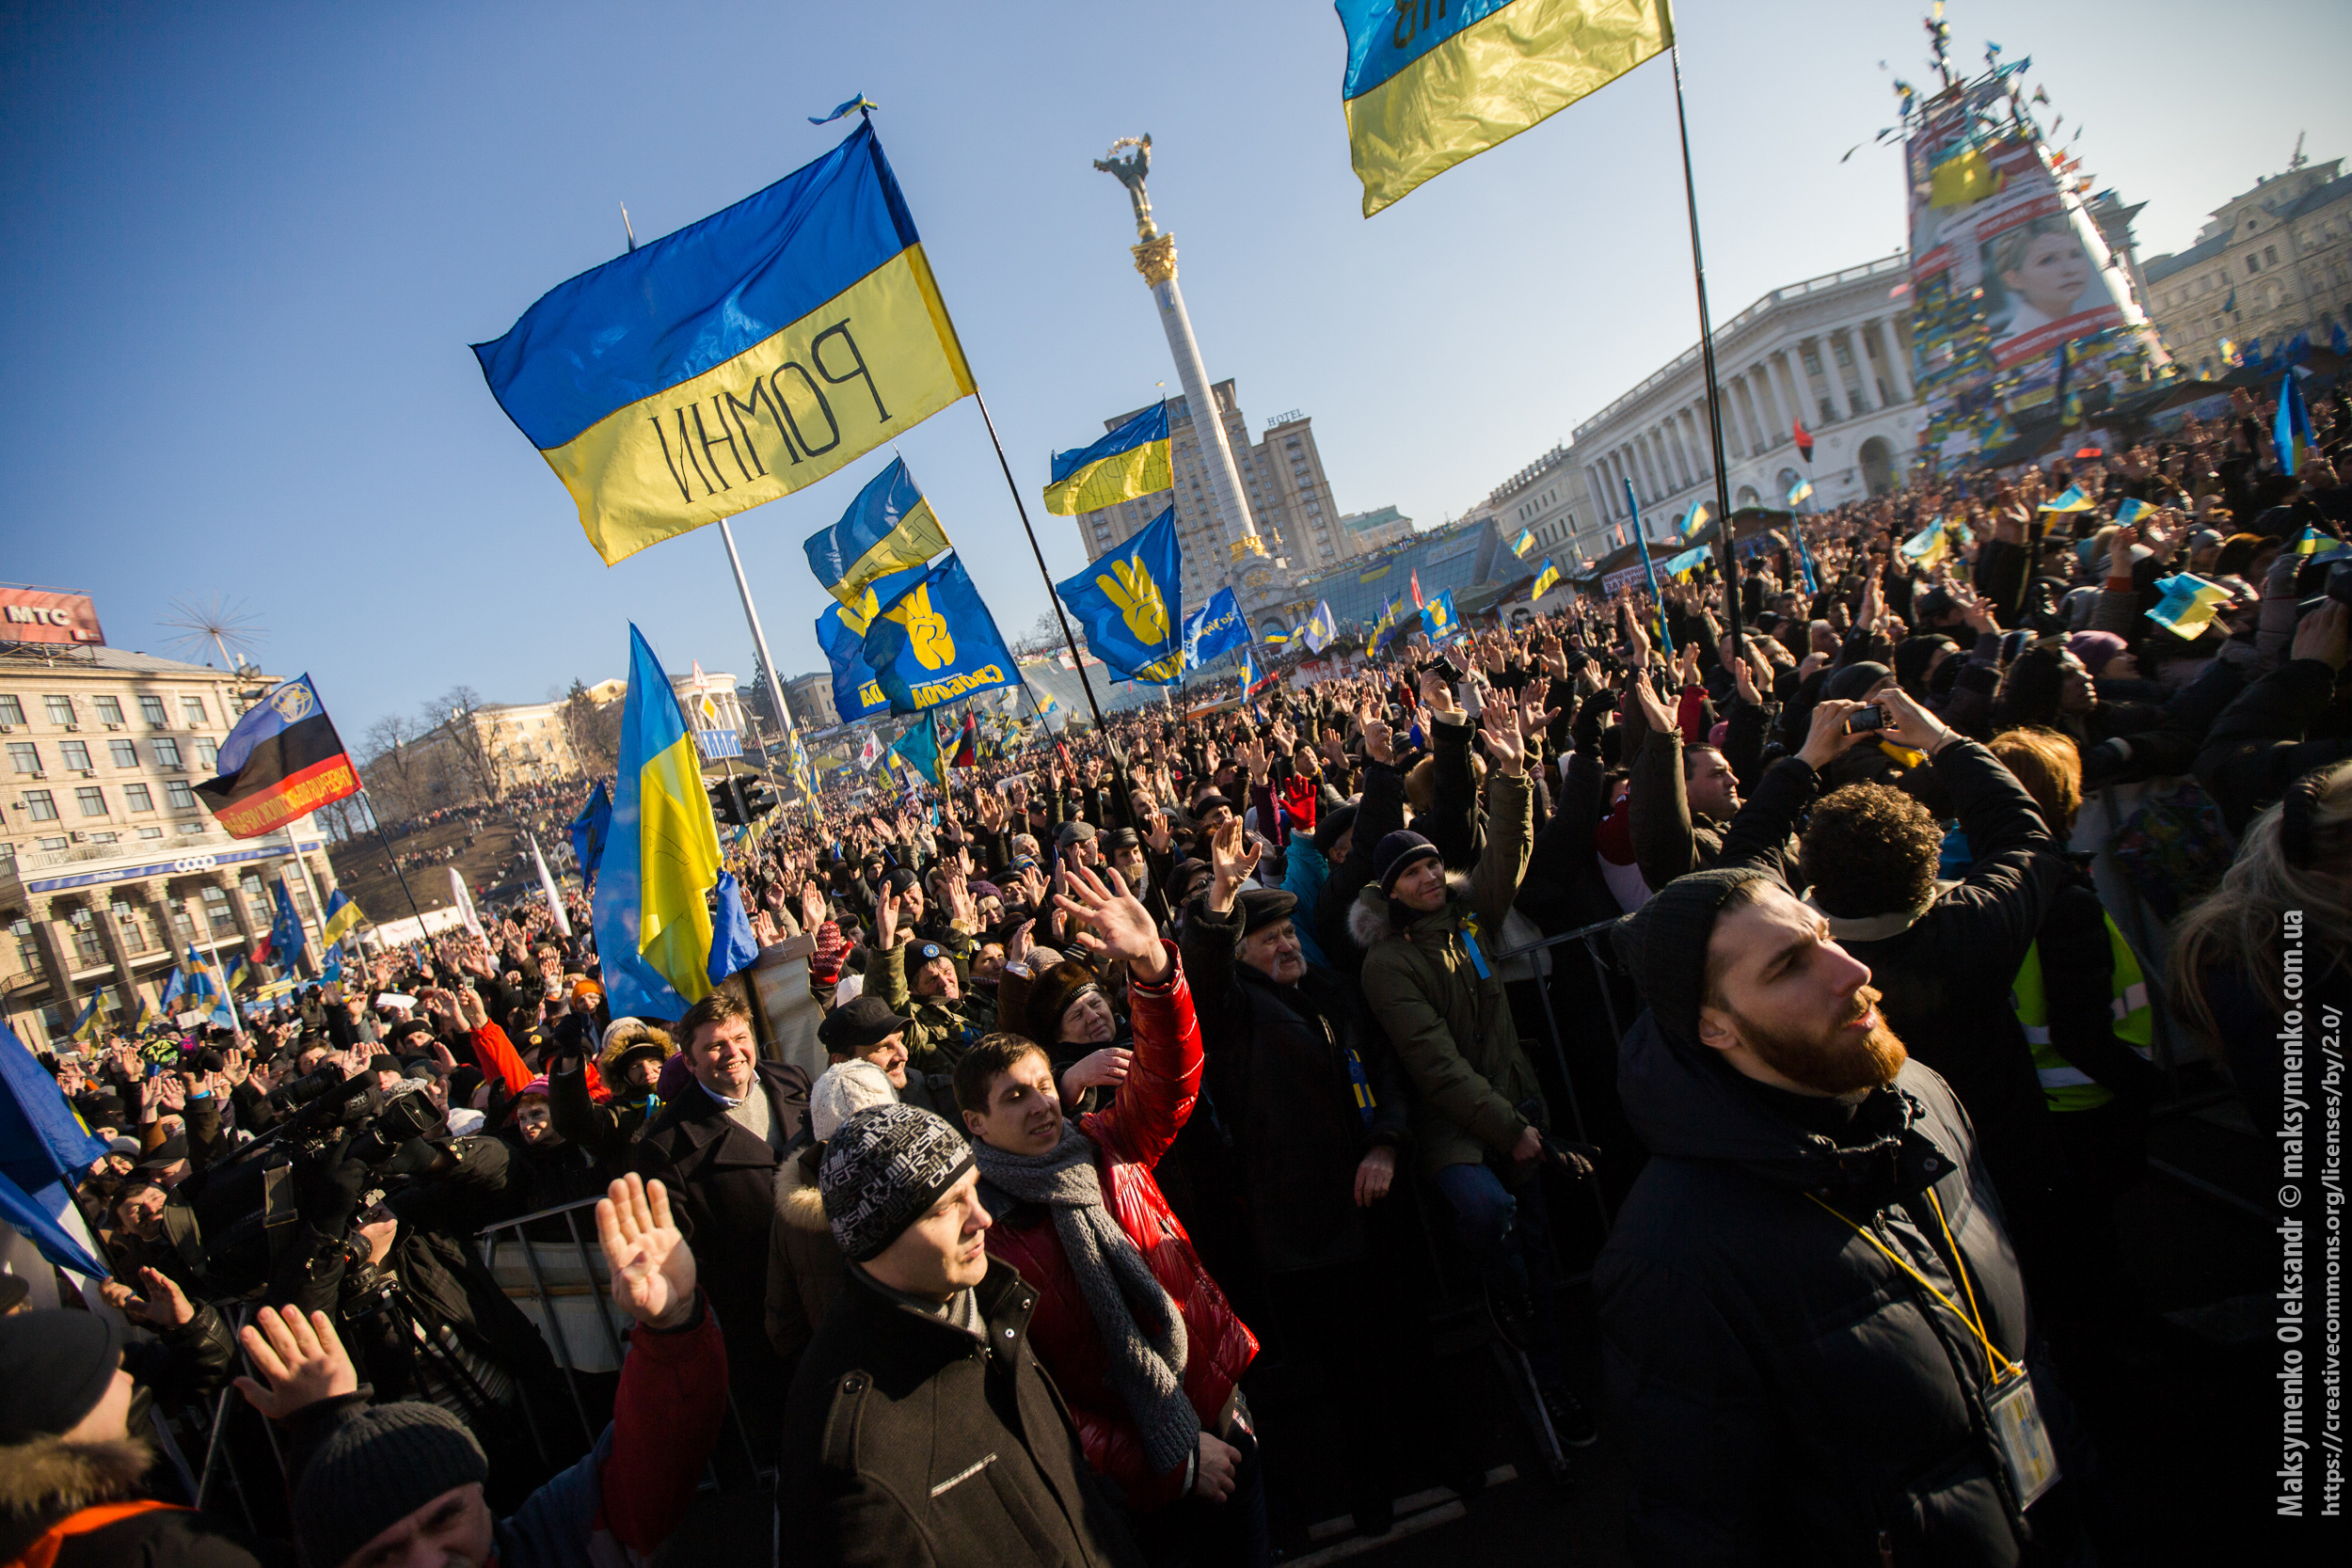 Anti-government protests in Kiev, Ukraine - Image by Sasha Maksymenko